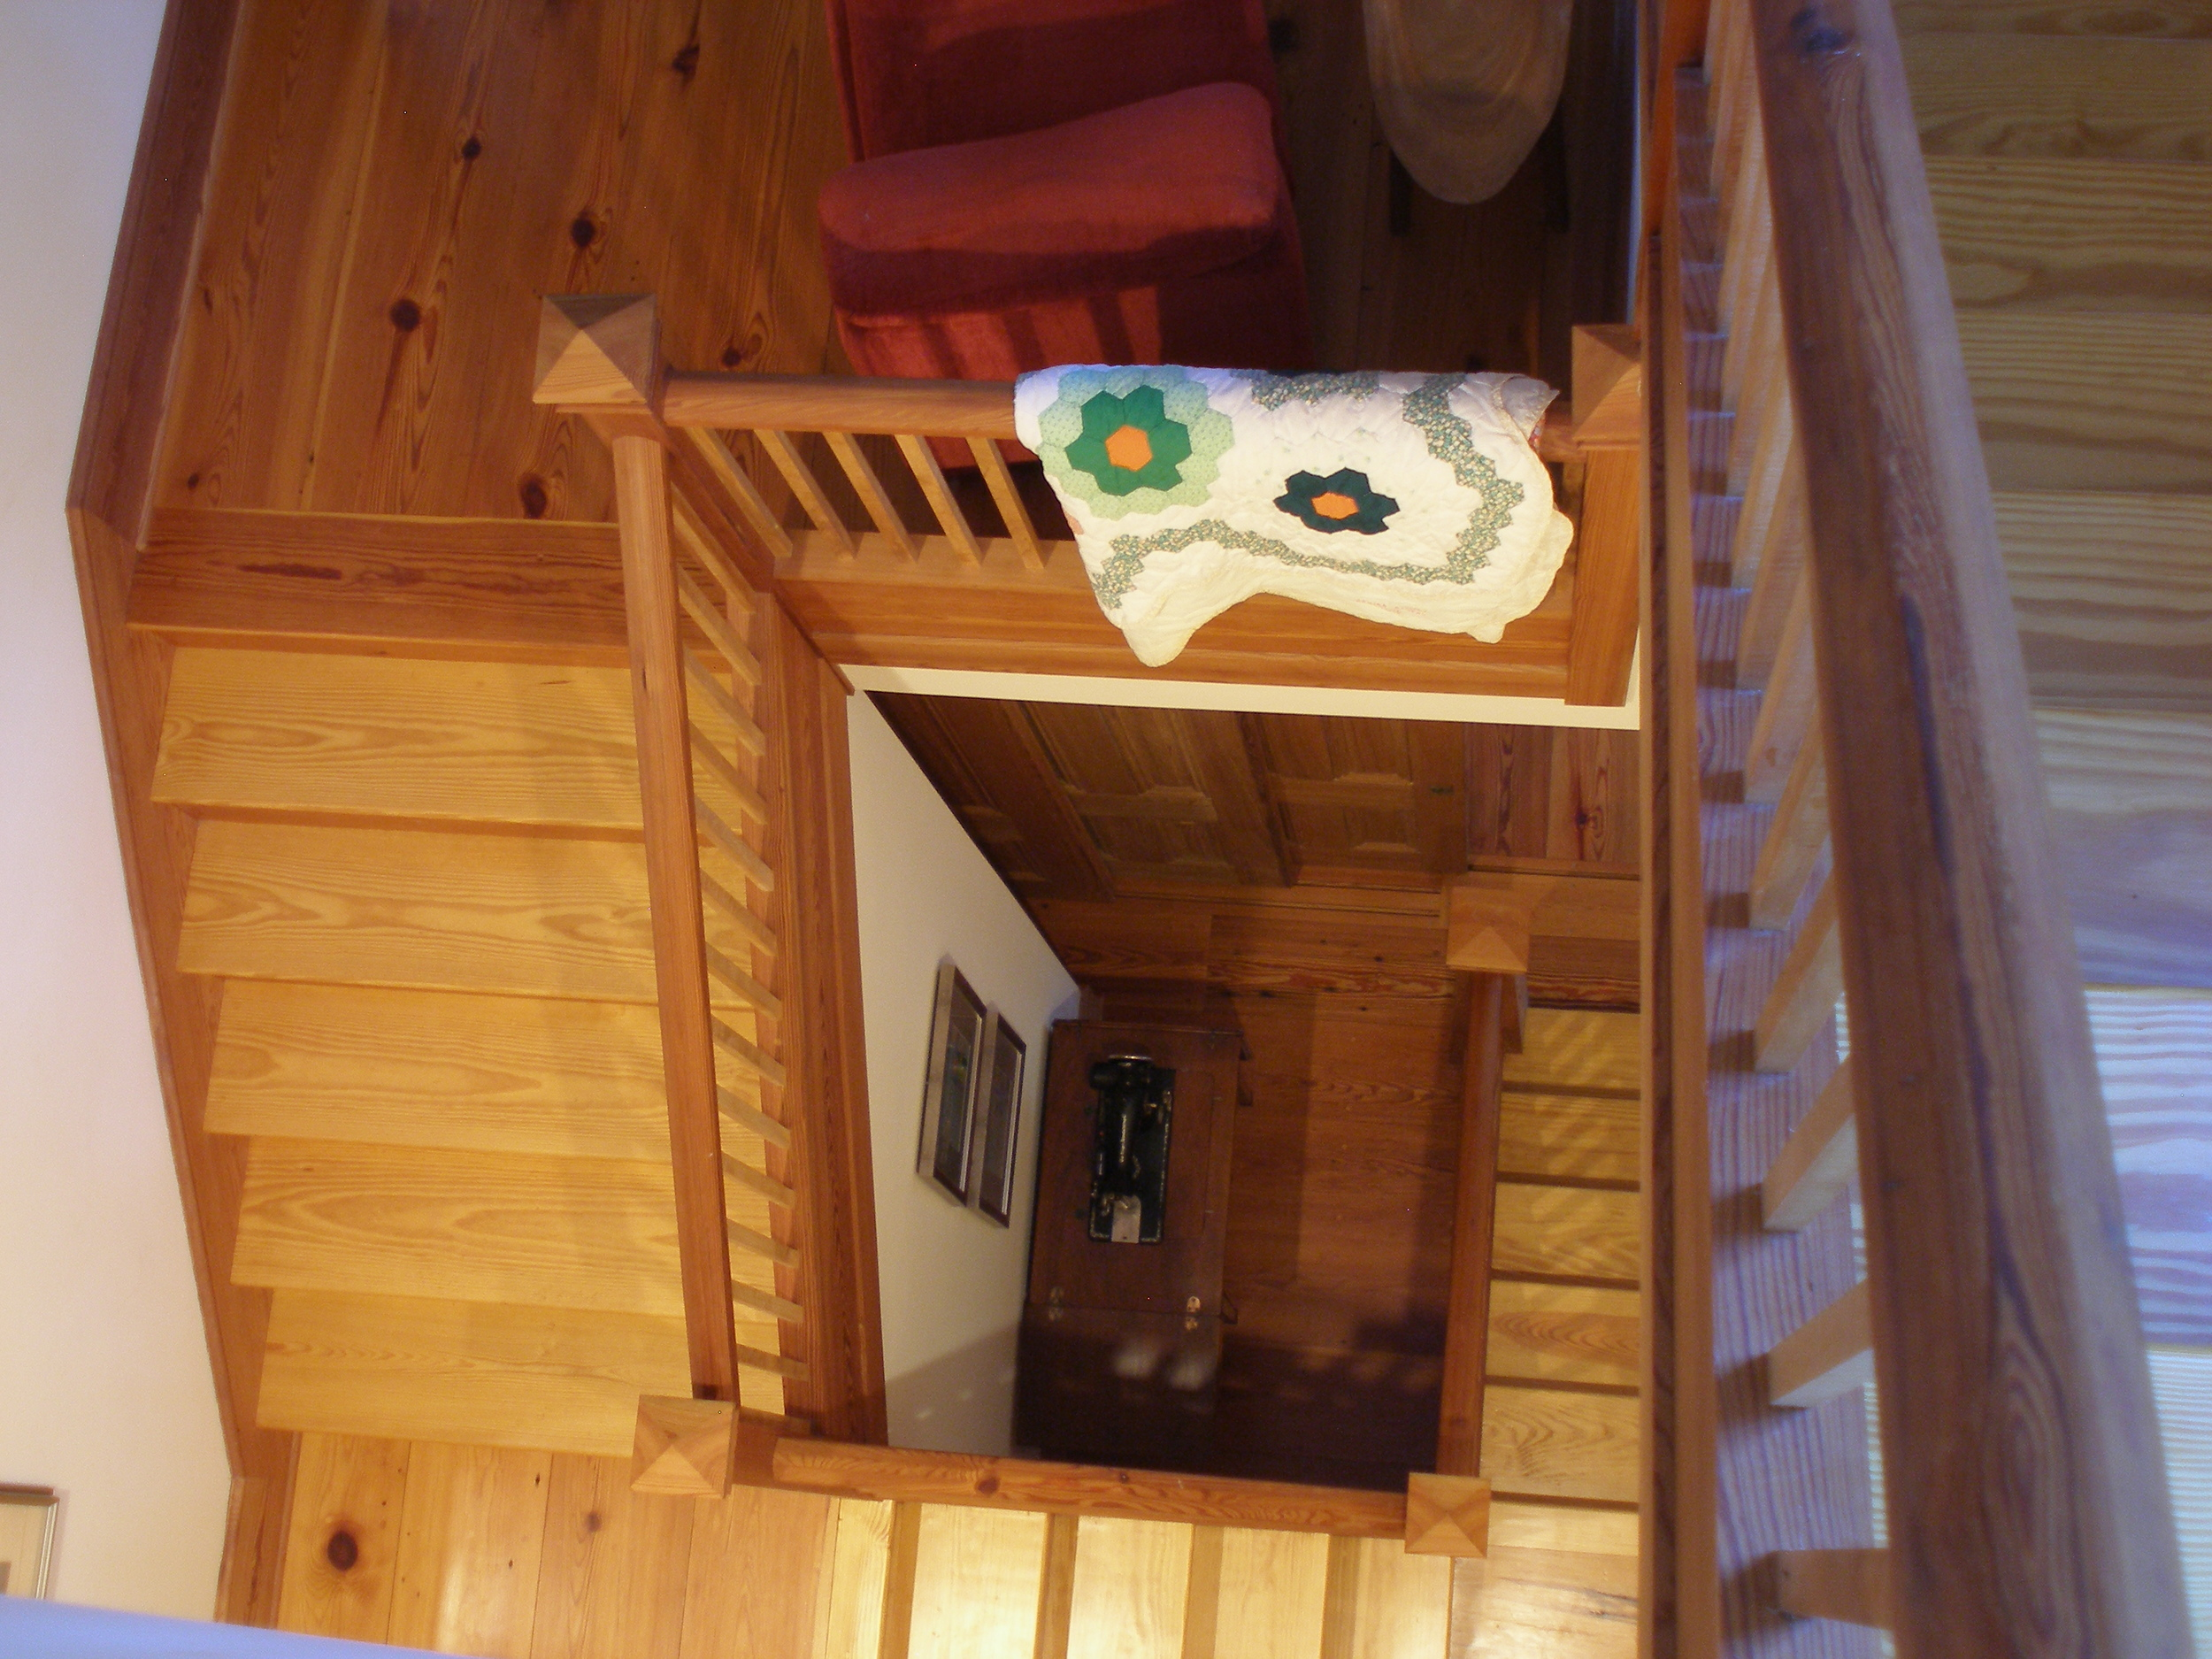 View of stairs from tower room.